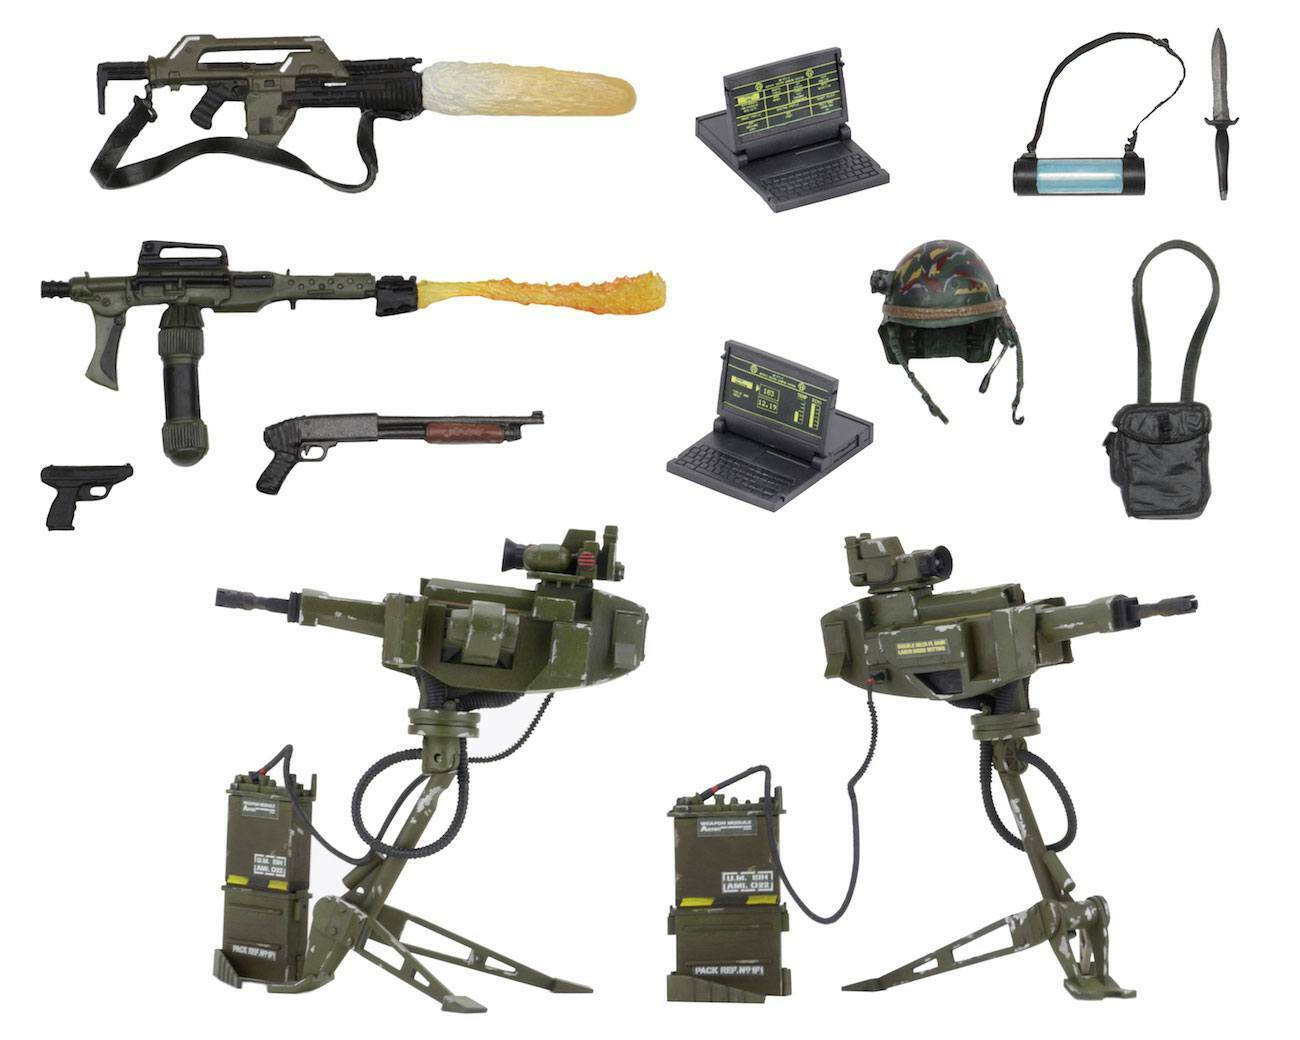 Aliens Uscm Arsenal Arma Accessory Set per Action Figures Neca Nuovo (Ka6